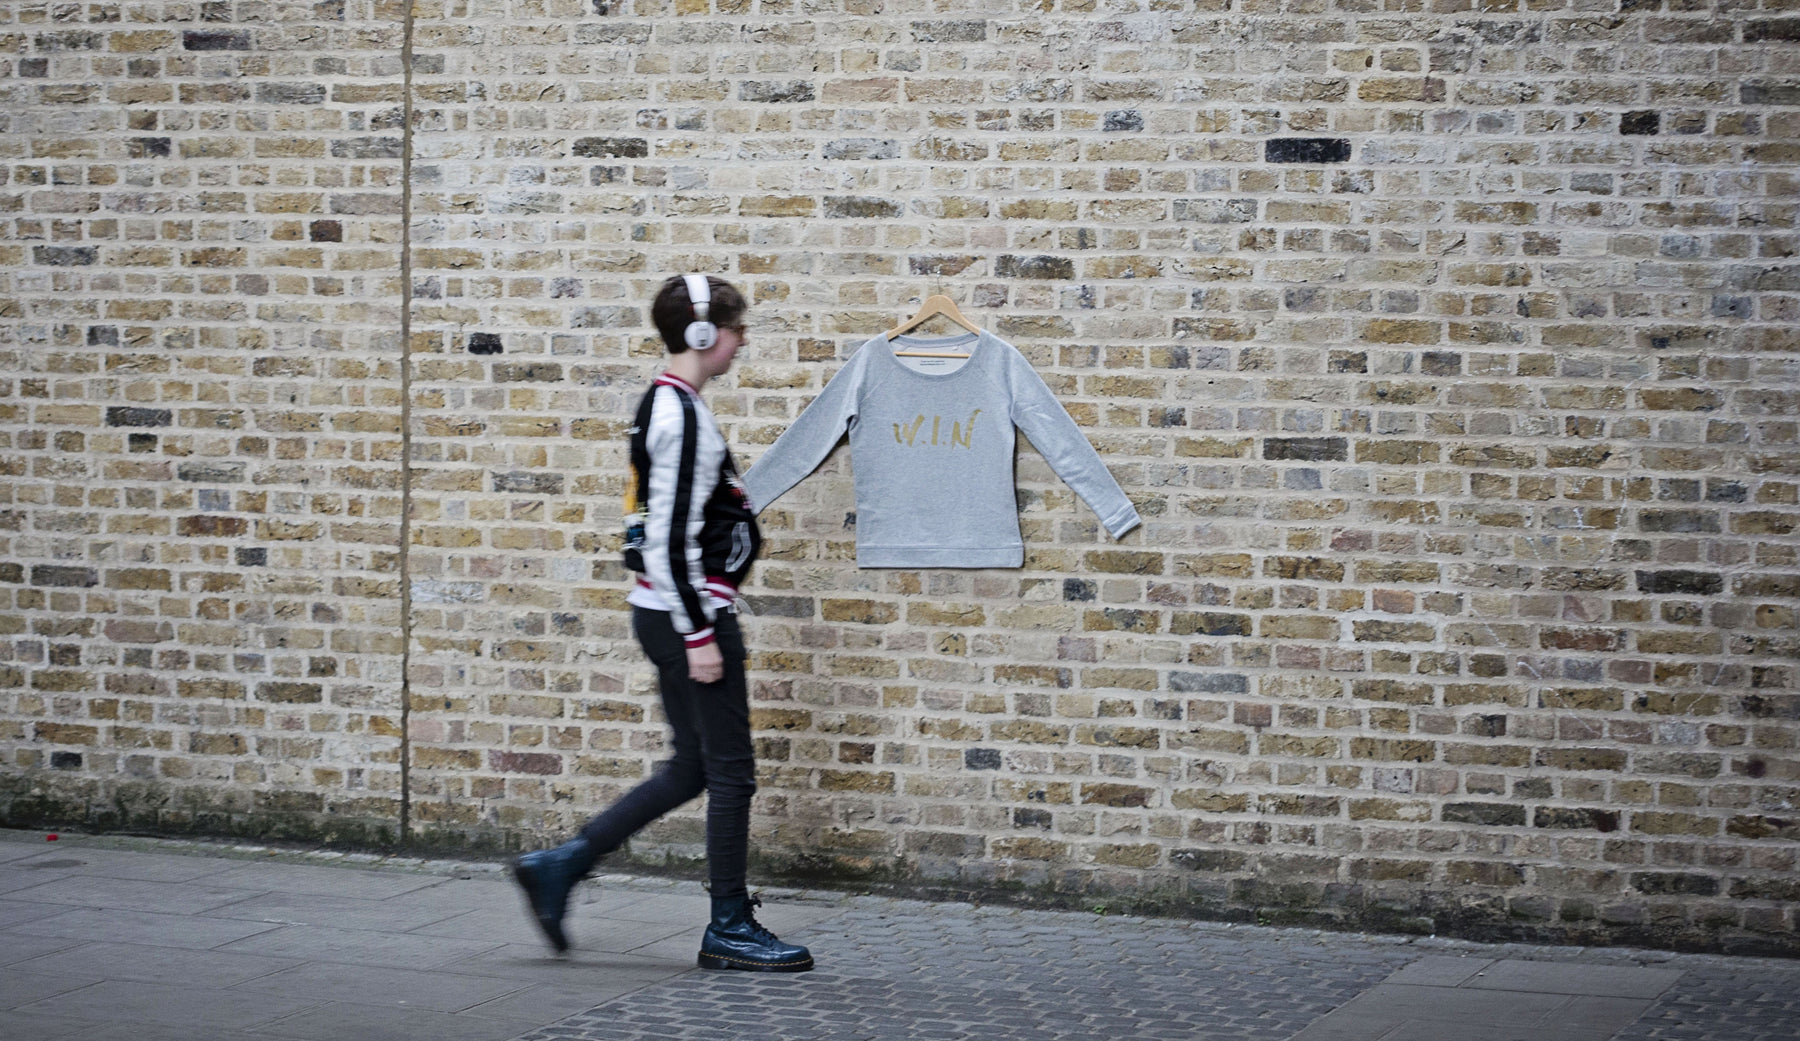 Sweatshirt hanging on a wall with passer by walking in front of it.